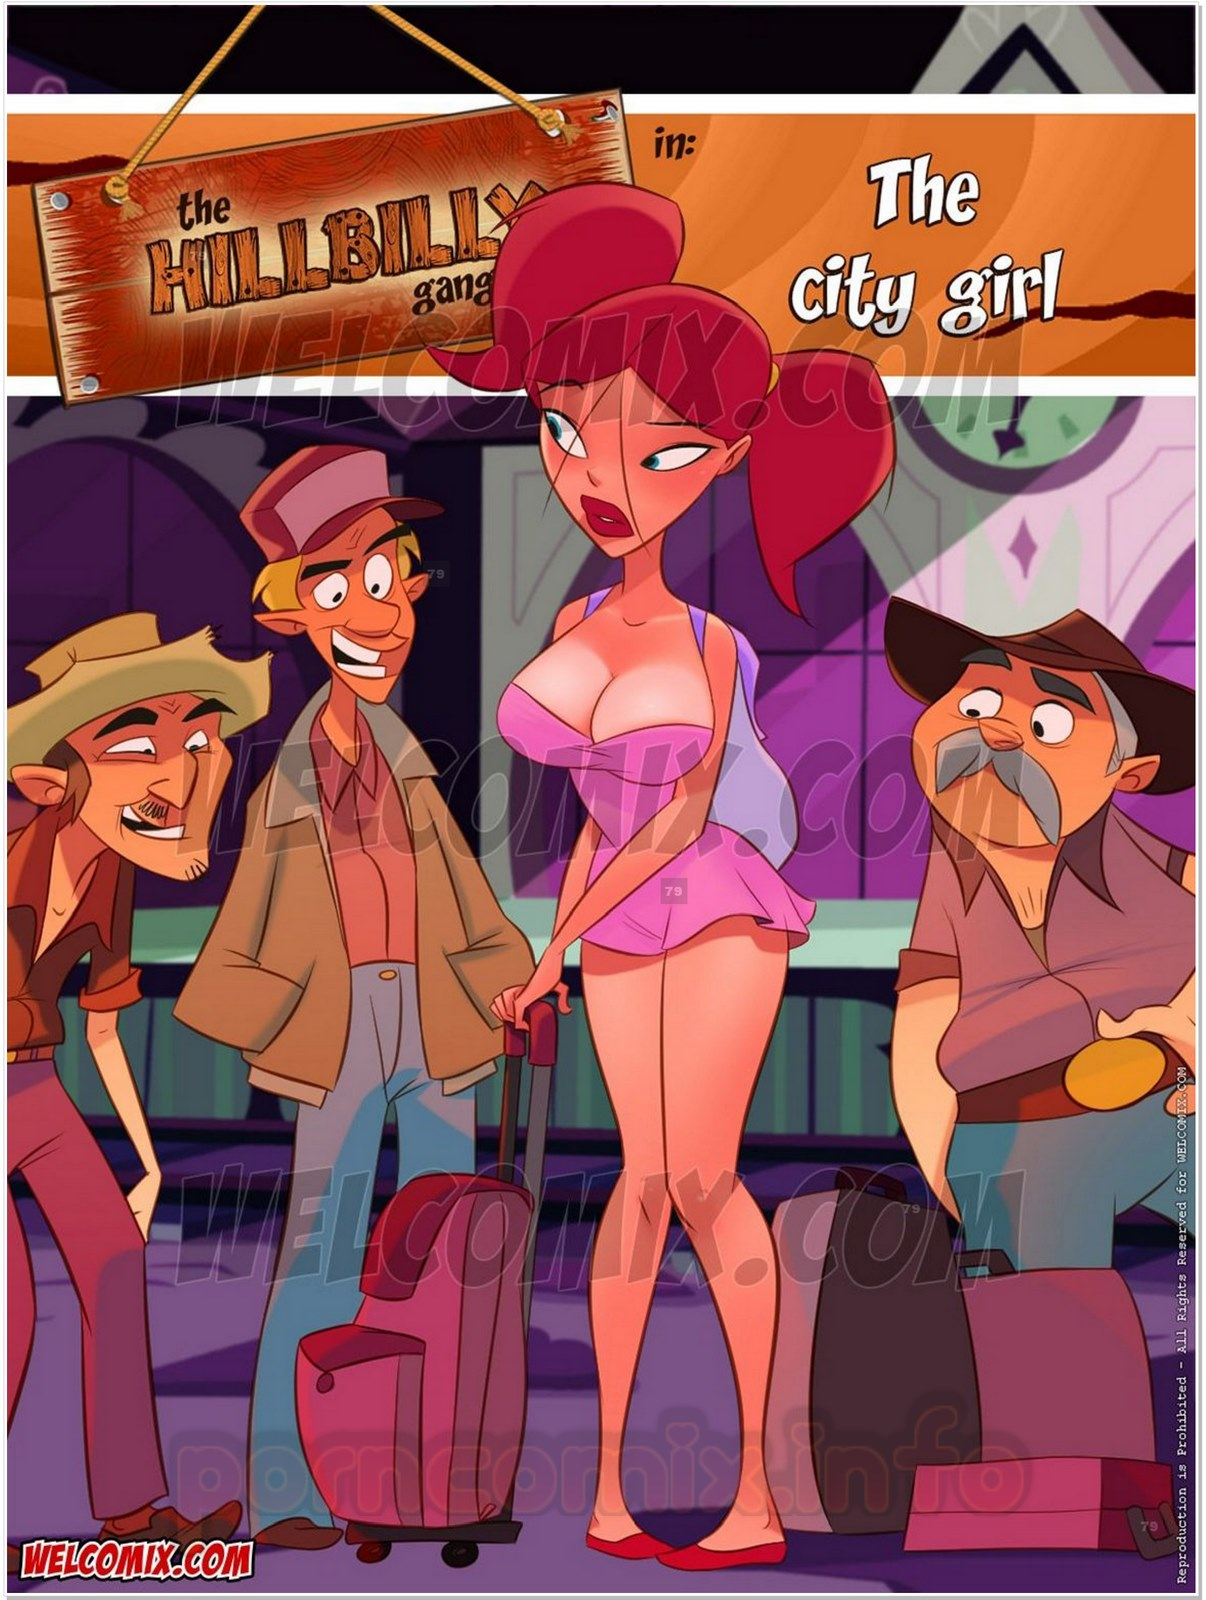 Porn Comics - Hillbilly Gang 11- The City Girl- Welcomix porn comics 8 muses